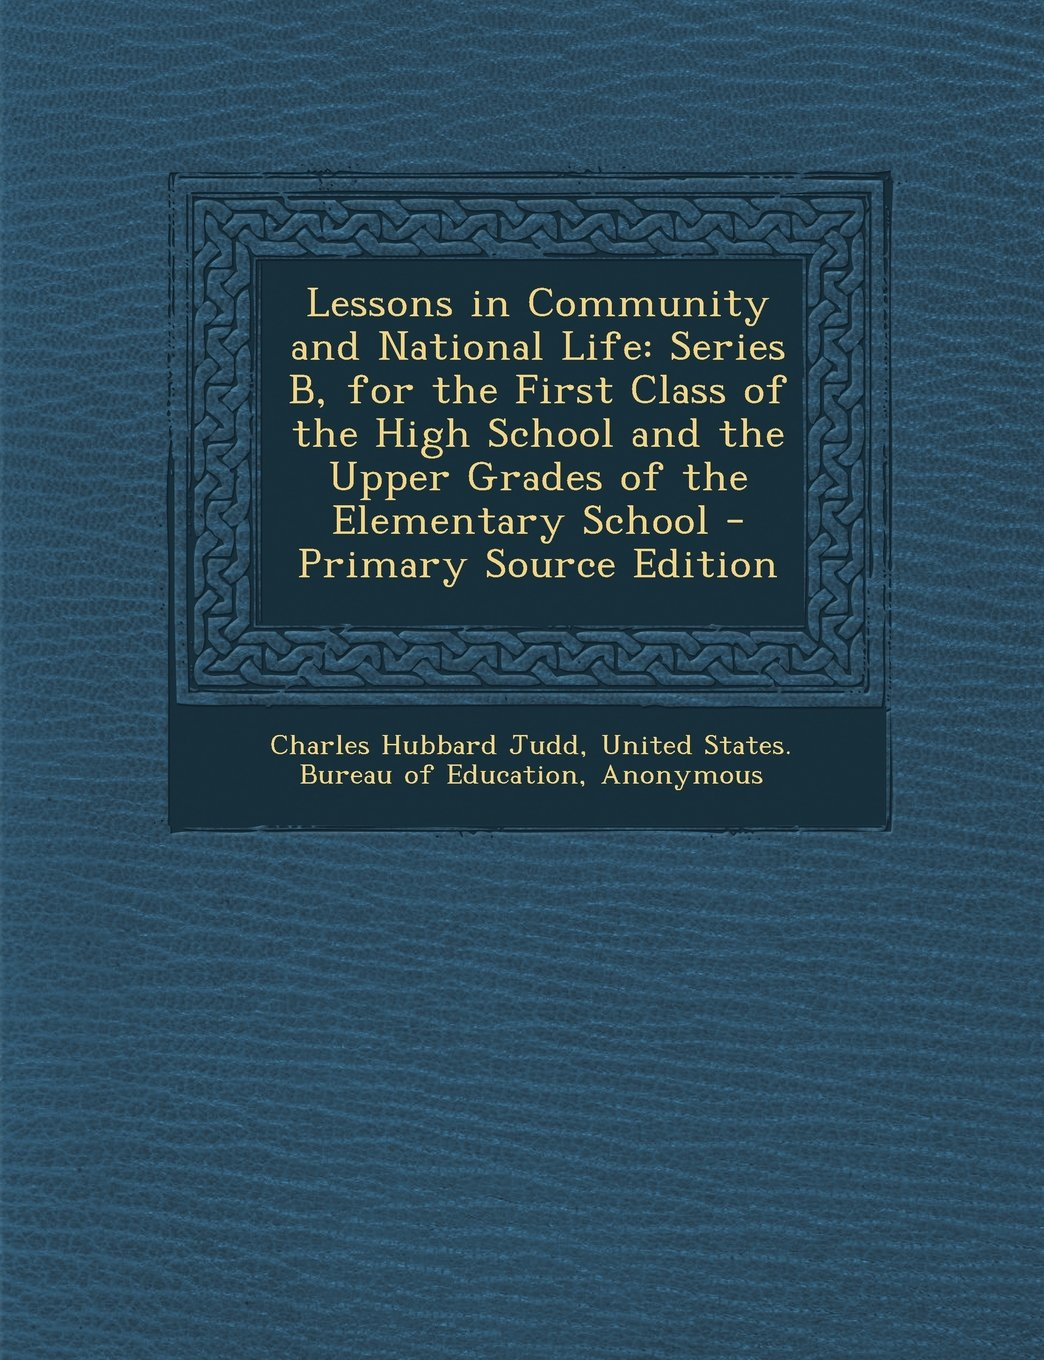 Lessons in Community and National Life: Series B, for the First Class of the High School and the Upper Grades of the Elementary School - Primary Sourc pdf